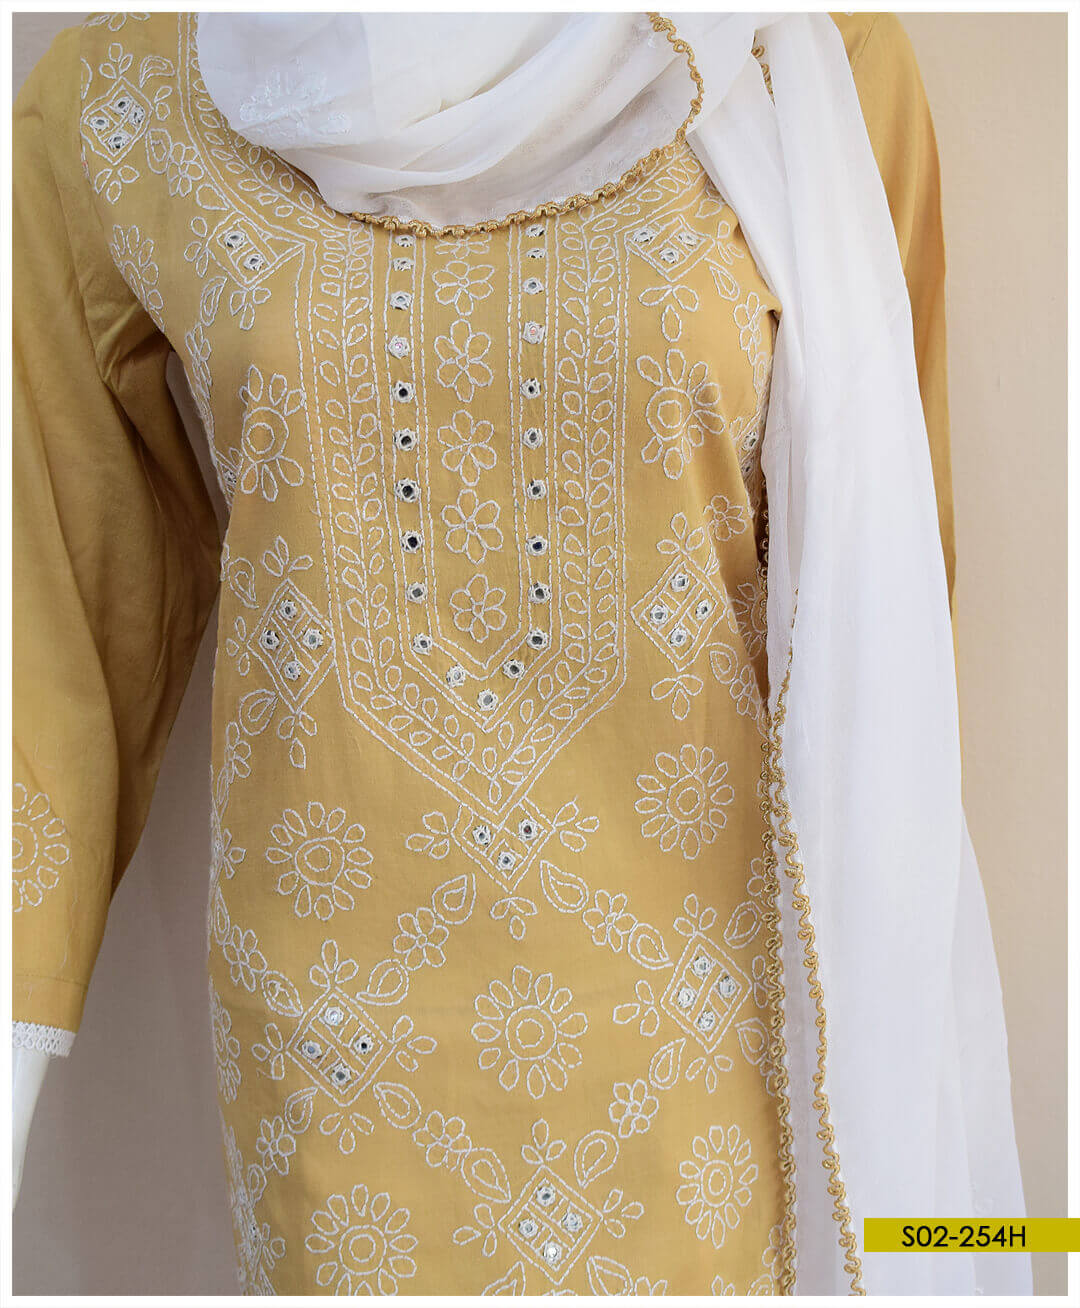 Hand Embroidered Lawn 3 PCs Shadow Sheesha Work Suits With Chiffon Dupatta - S02-254H